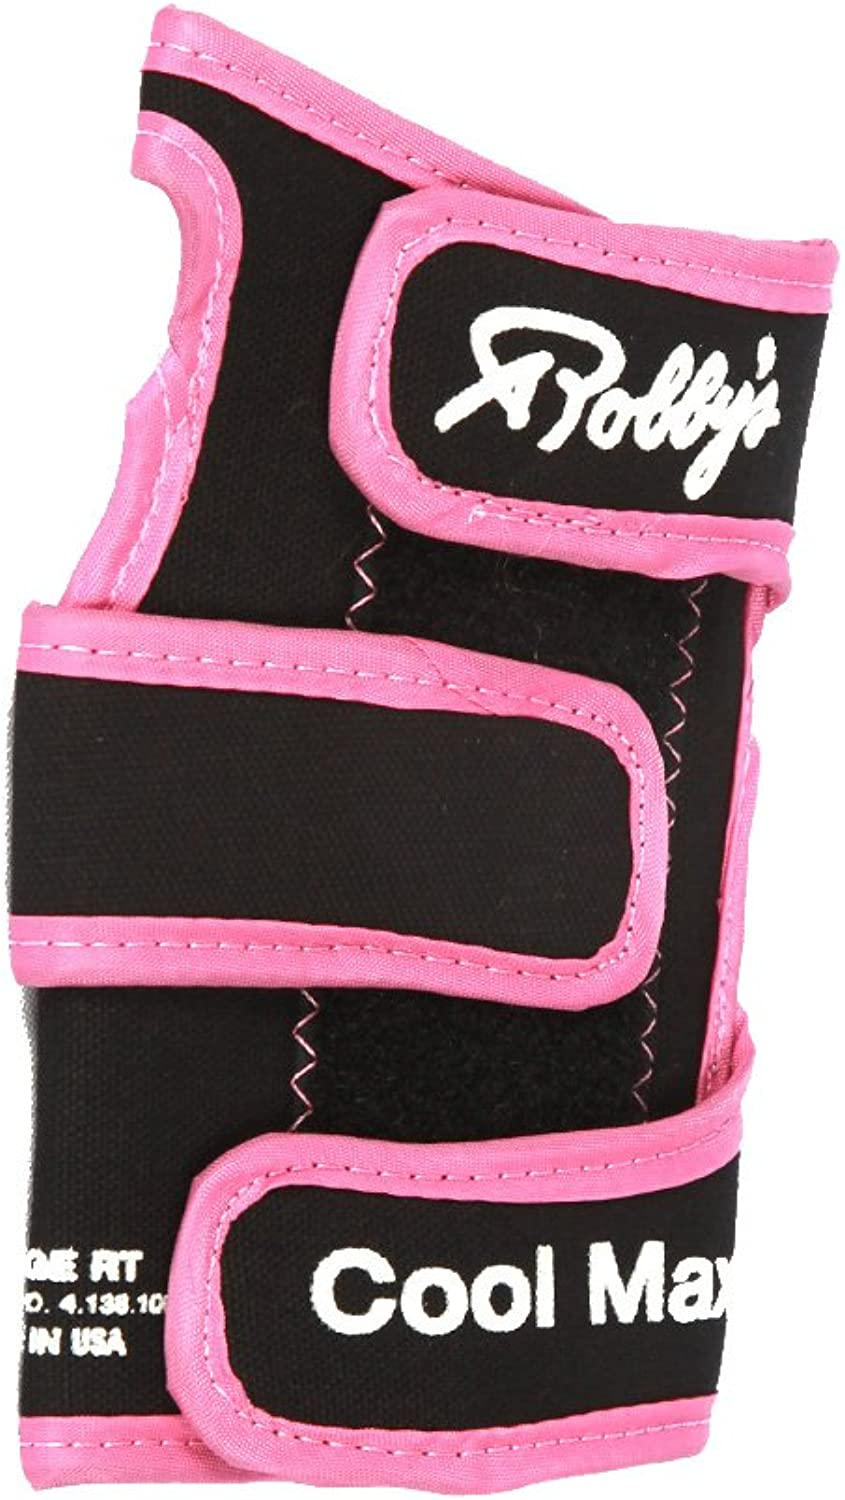 Robby's Coolmax Original Right Wrist Support, Black Pink, Large